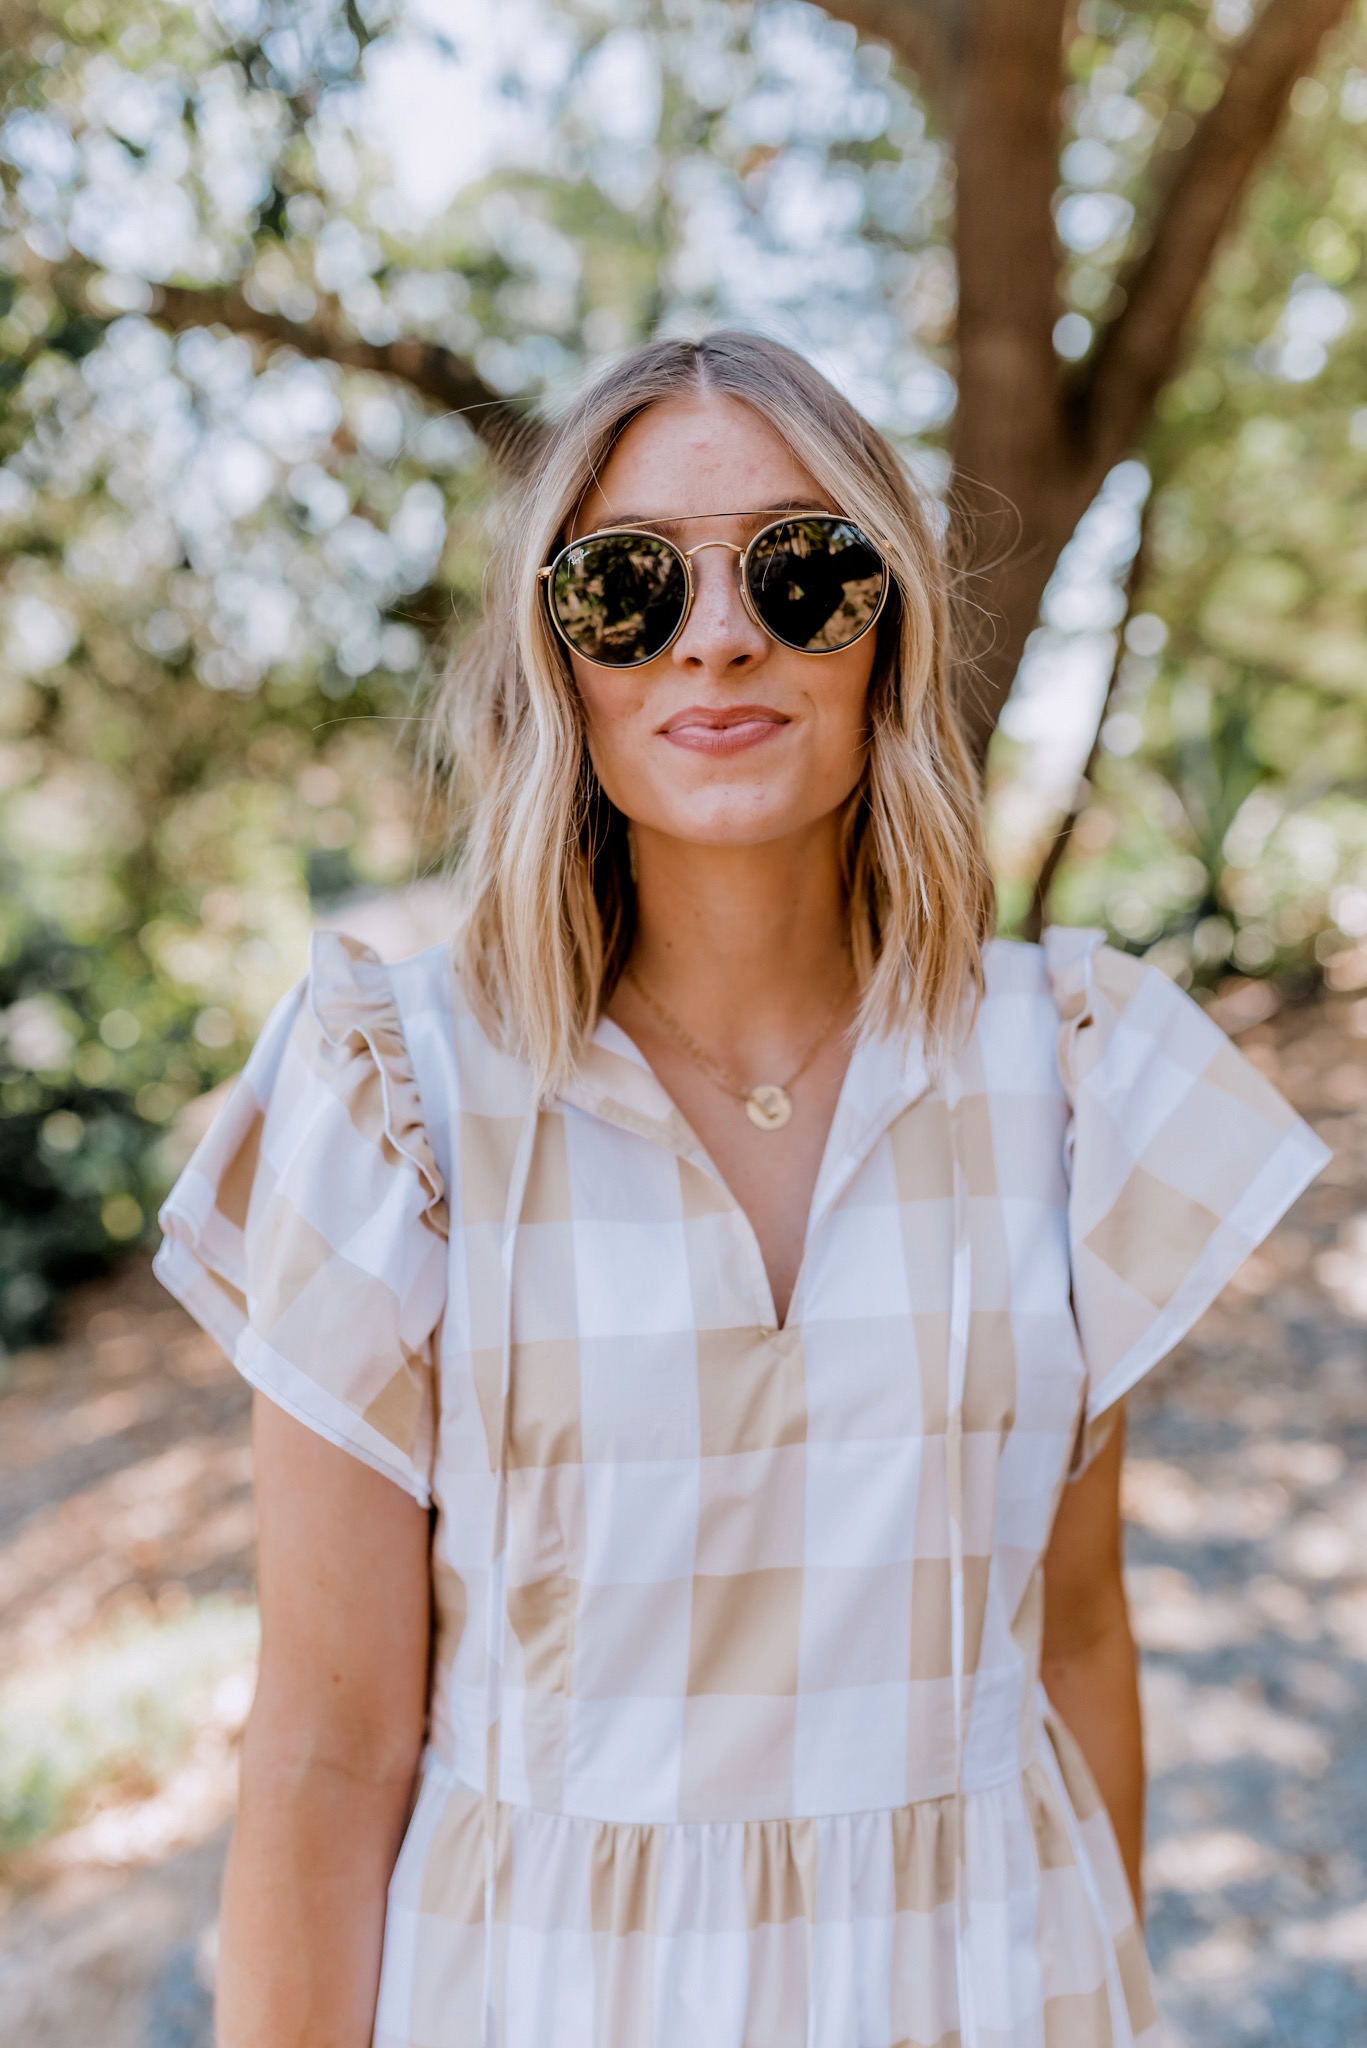 New Arrivals by popular San Diego fashion blog, Navy Grace: image of a woman standing outside on a gravel path and wearing a Target Women's Bell Short Sleeve Dress, Anthropologie Gemma Bow Slide Sandals, Ray-Ban sunglasses, and holding a Nordstrom Gucci Small Matelassé Leather Shoulder Bag.